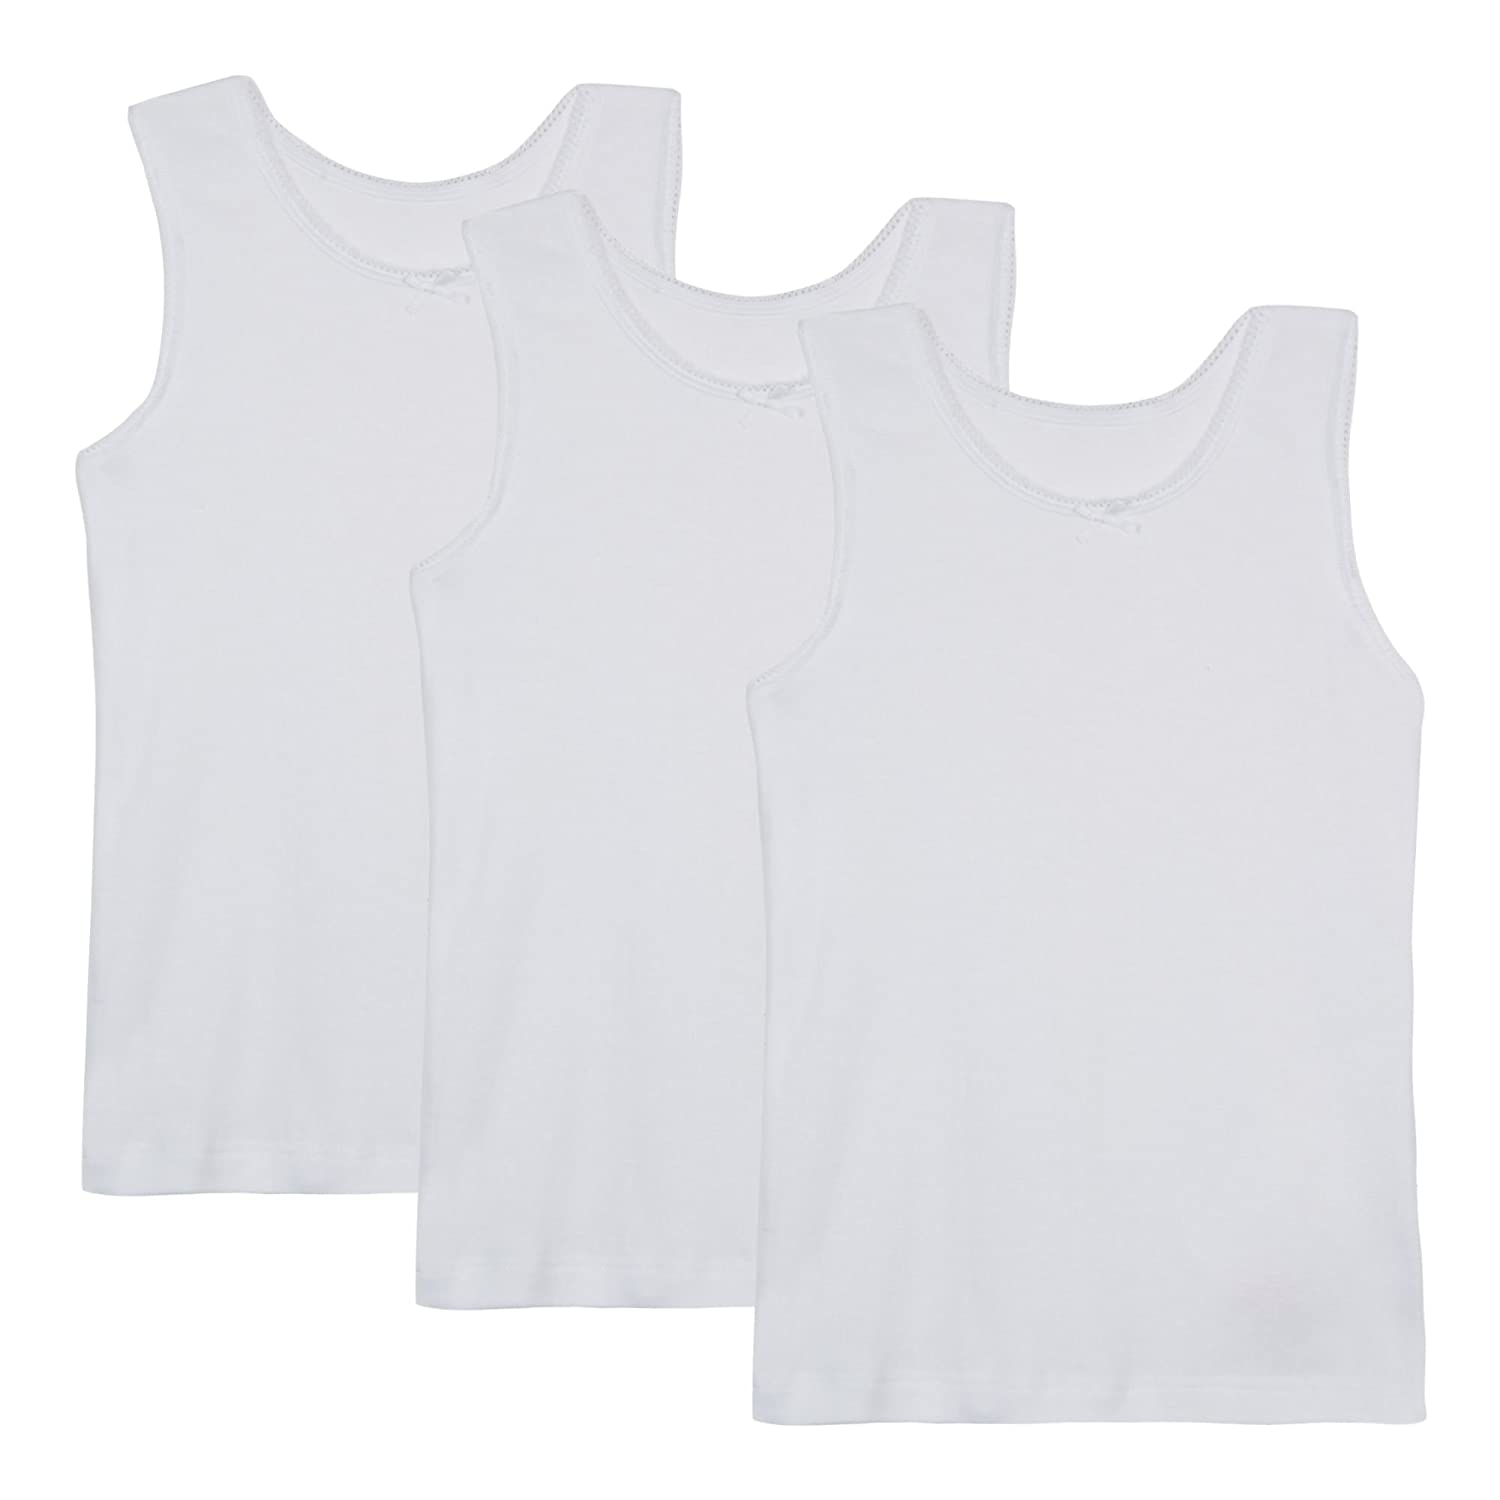 Debenhams Kids '3 Pack Girls' White Vests